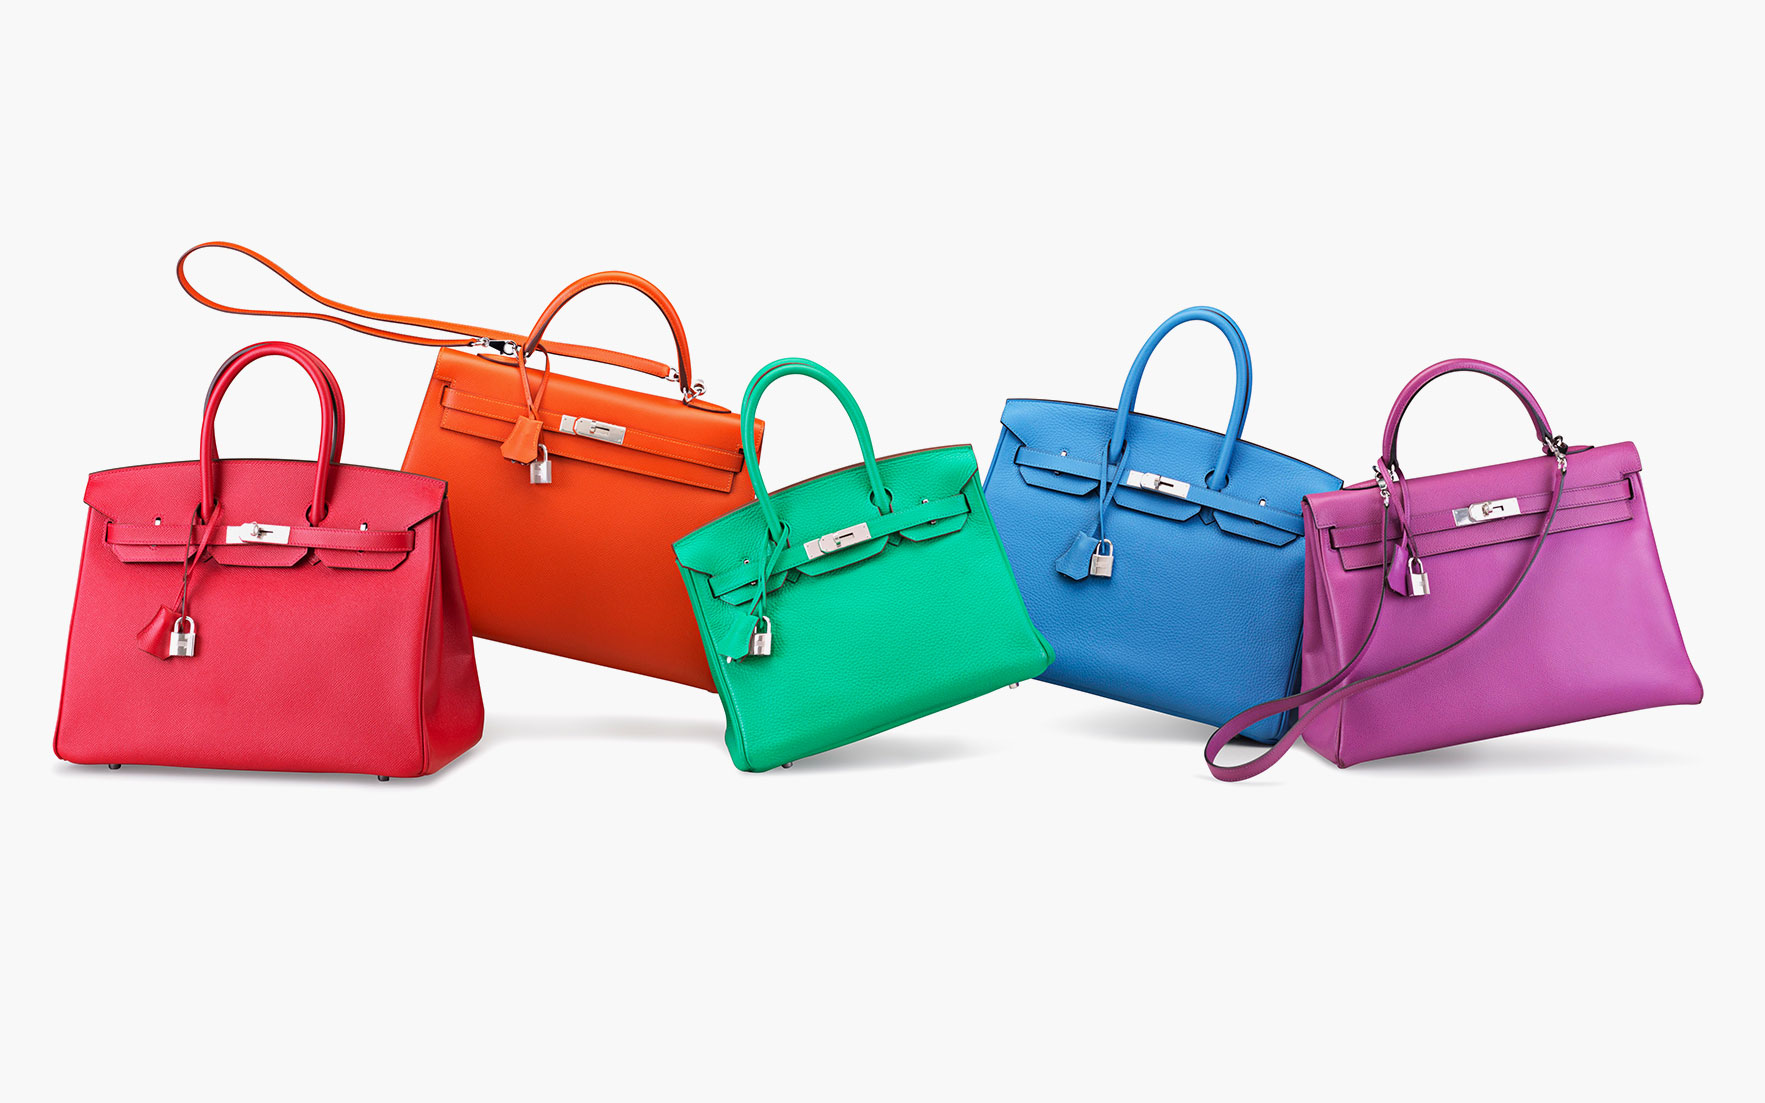 c45ac85244 Hermès handbags for every budget